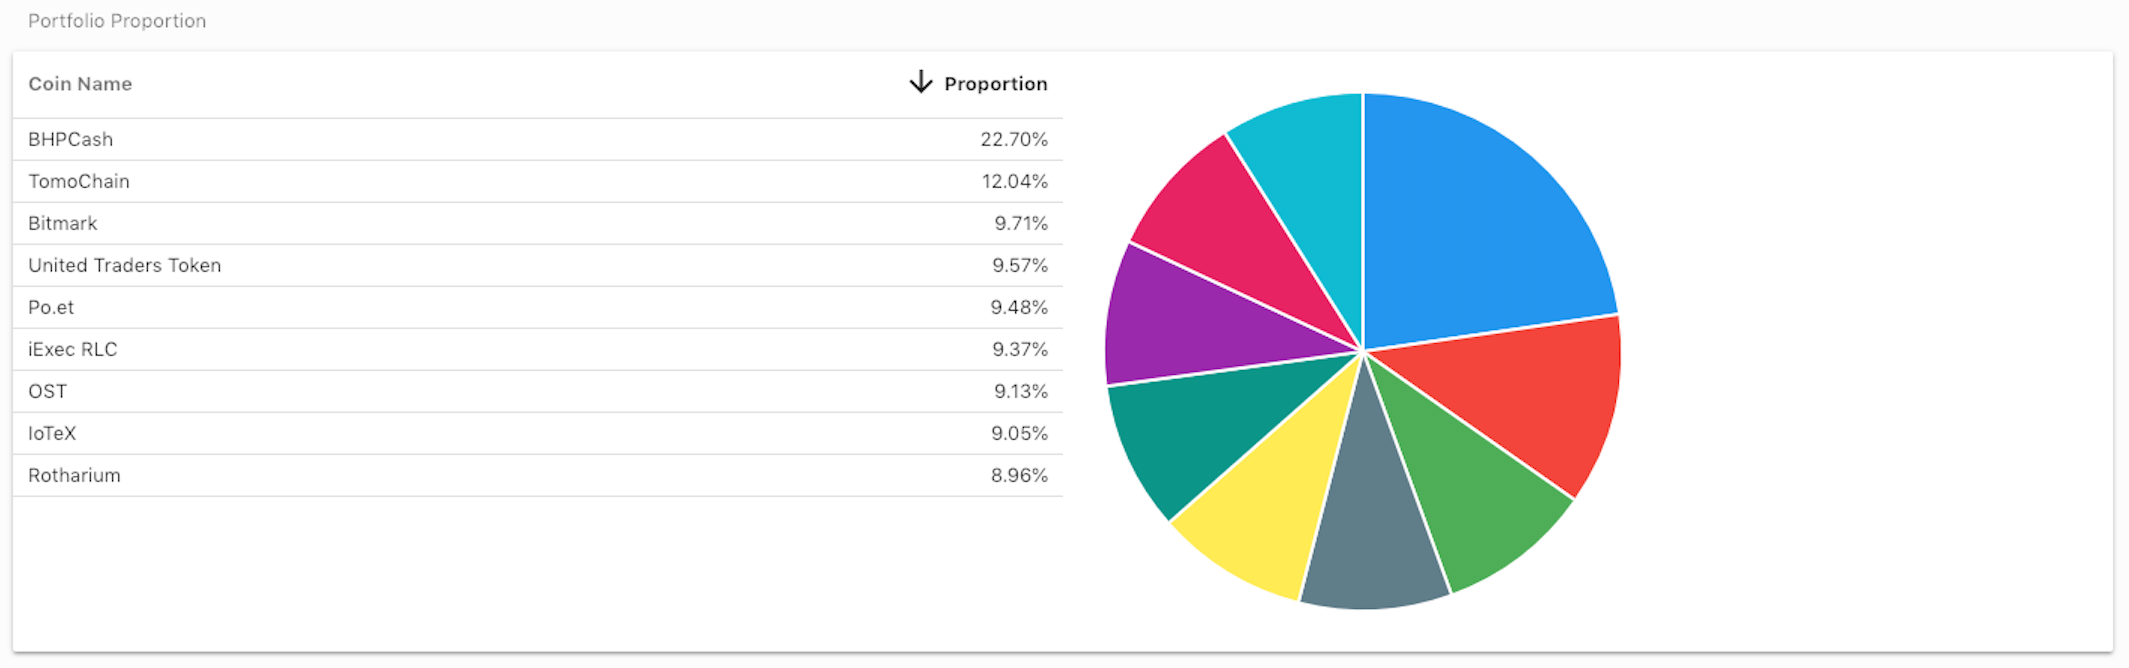 Result of crypto prediction - 19% gain